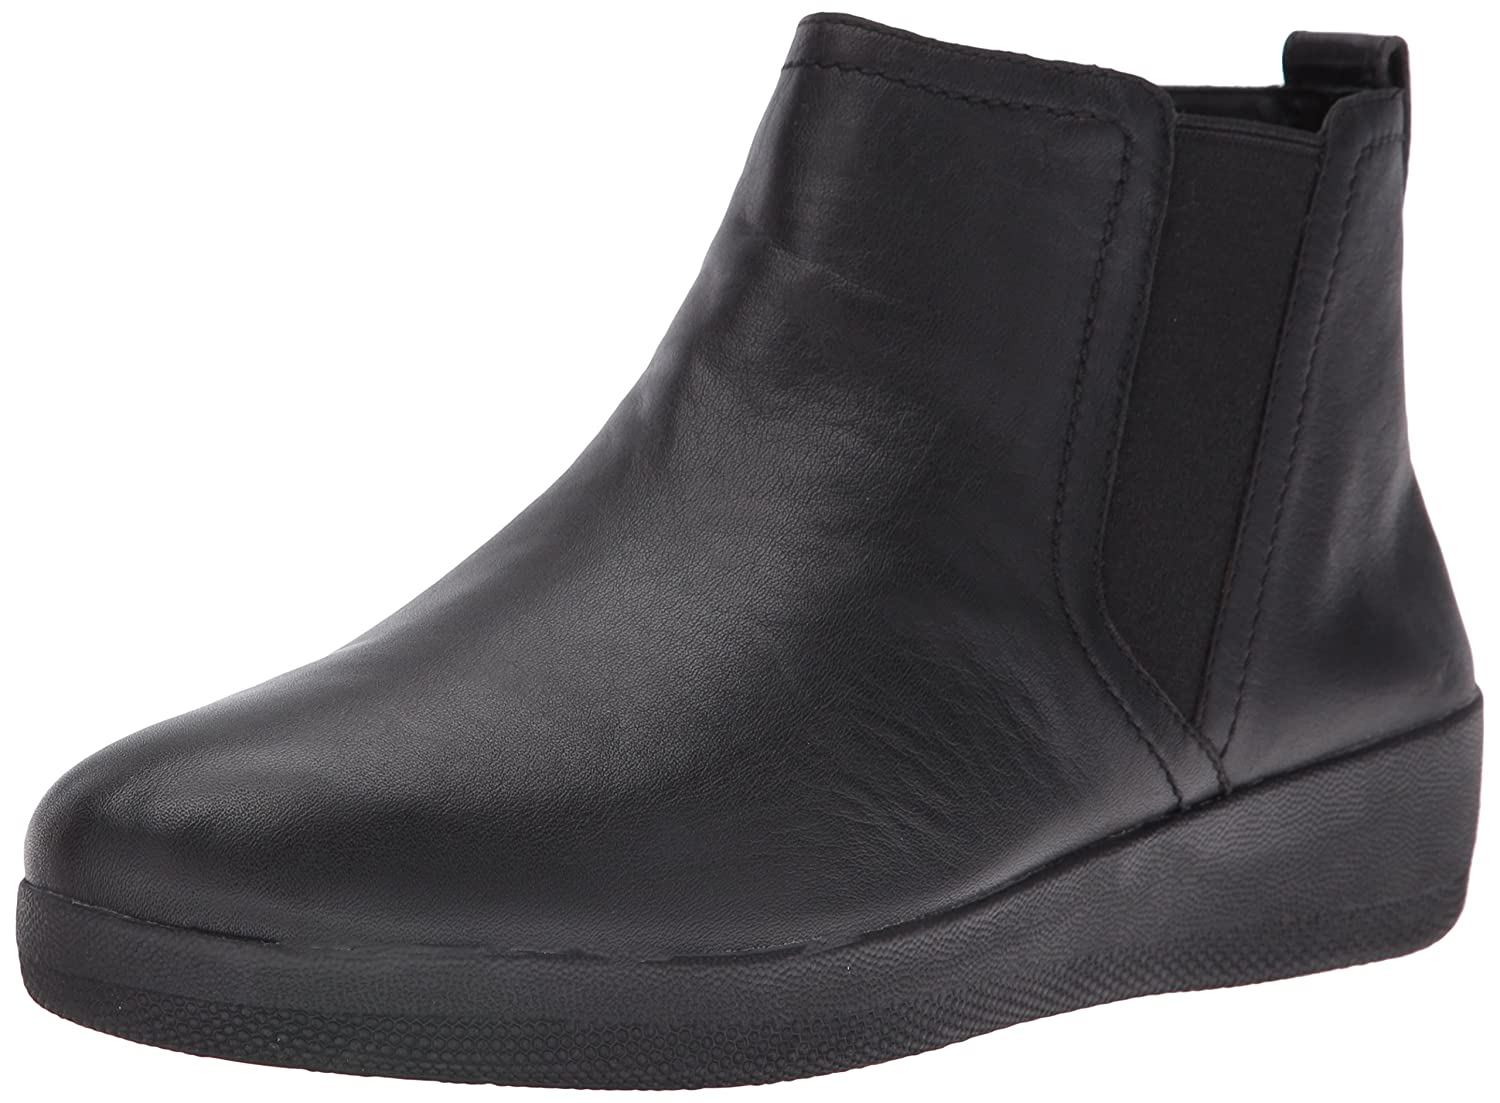 FitFlop™ Superchelsea™ Boot, Casual Ankle Boots In Black Or Chocolate Leather 4.5|Nero (Black)